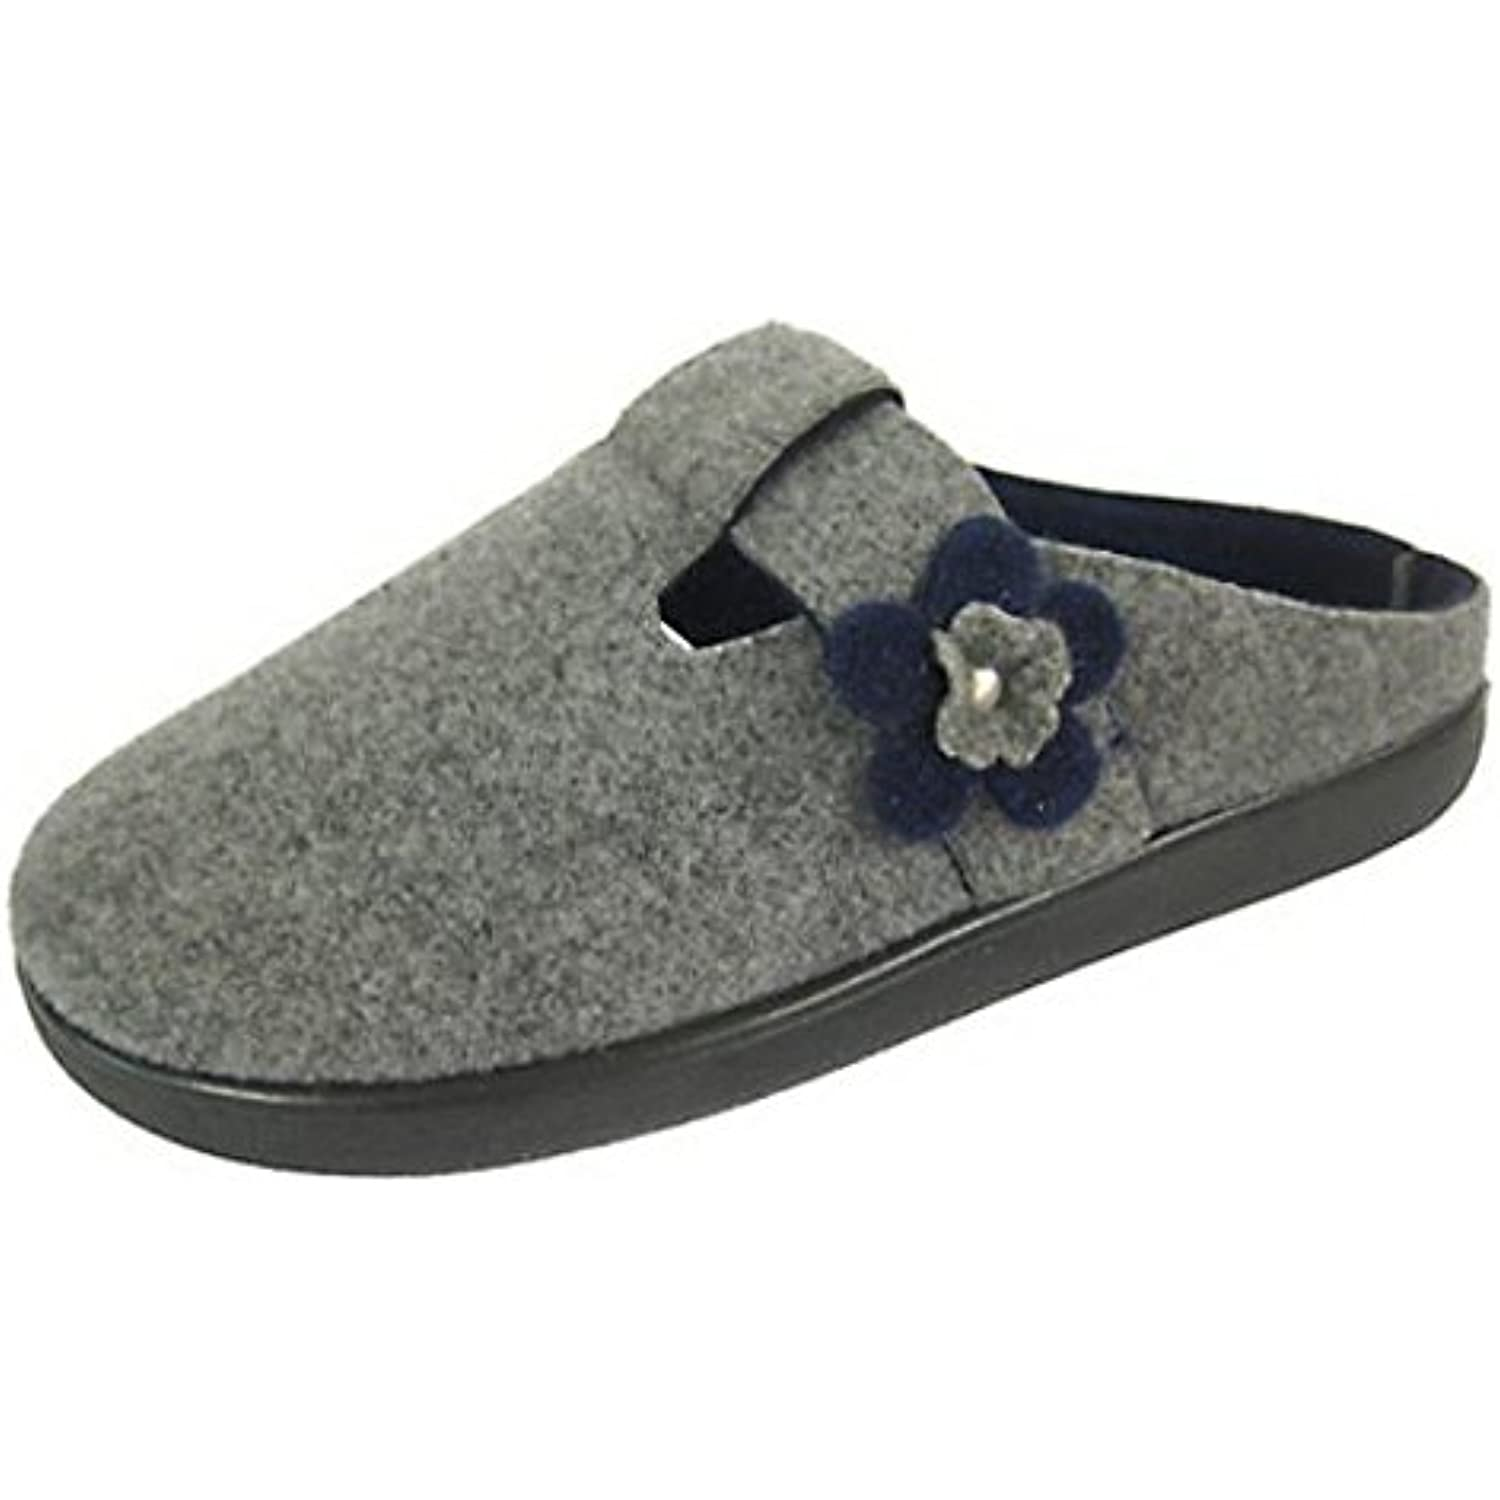 Coolers Coolers Coolers , Chaussons pour homme - B076JGCJW3 - 98cdde